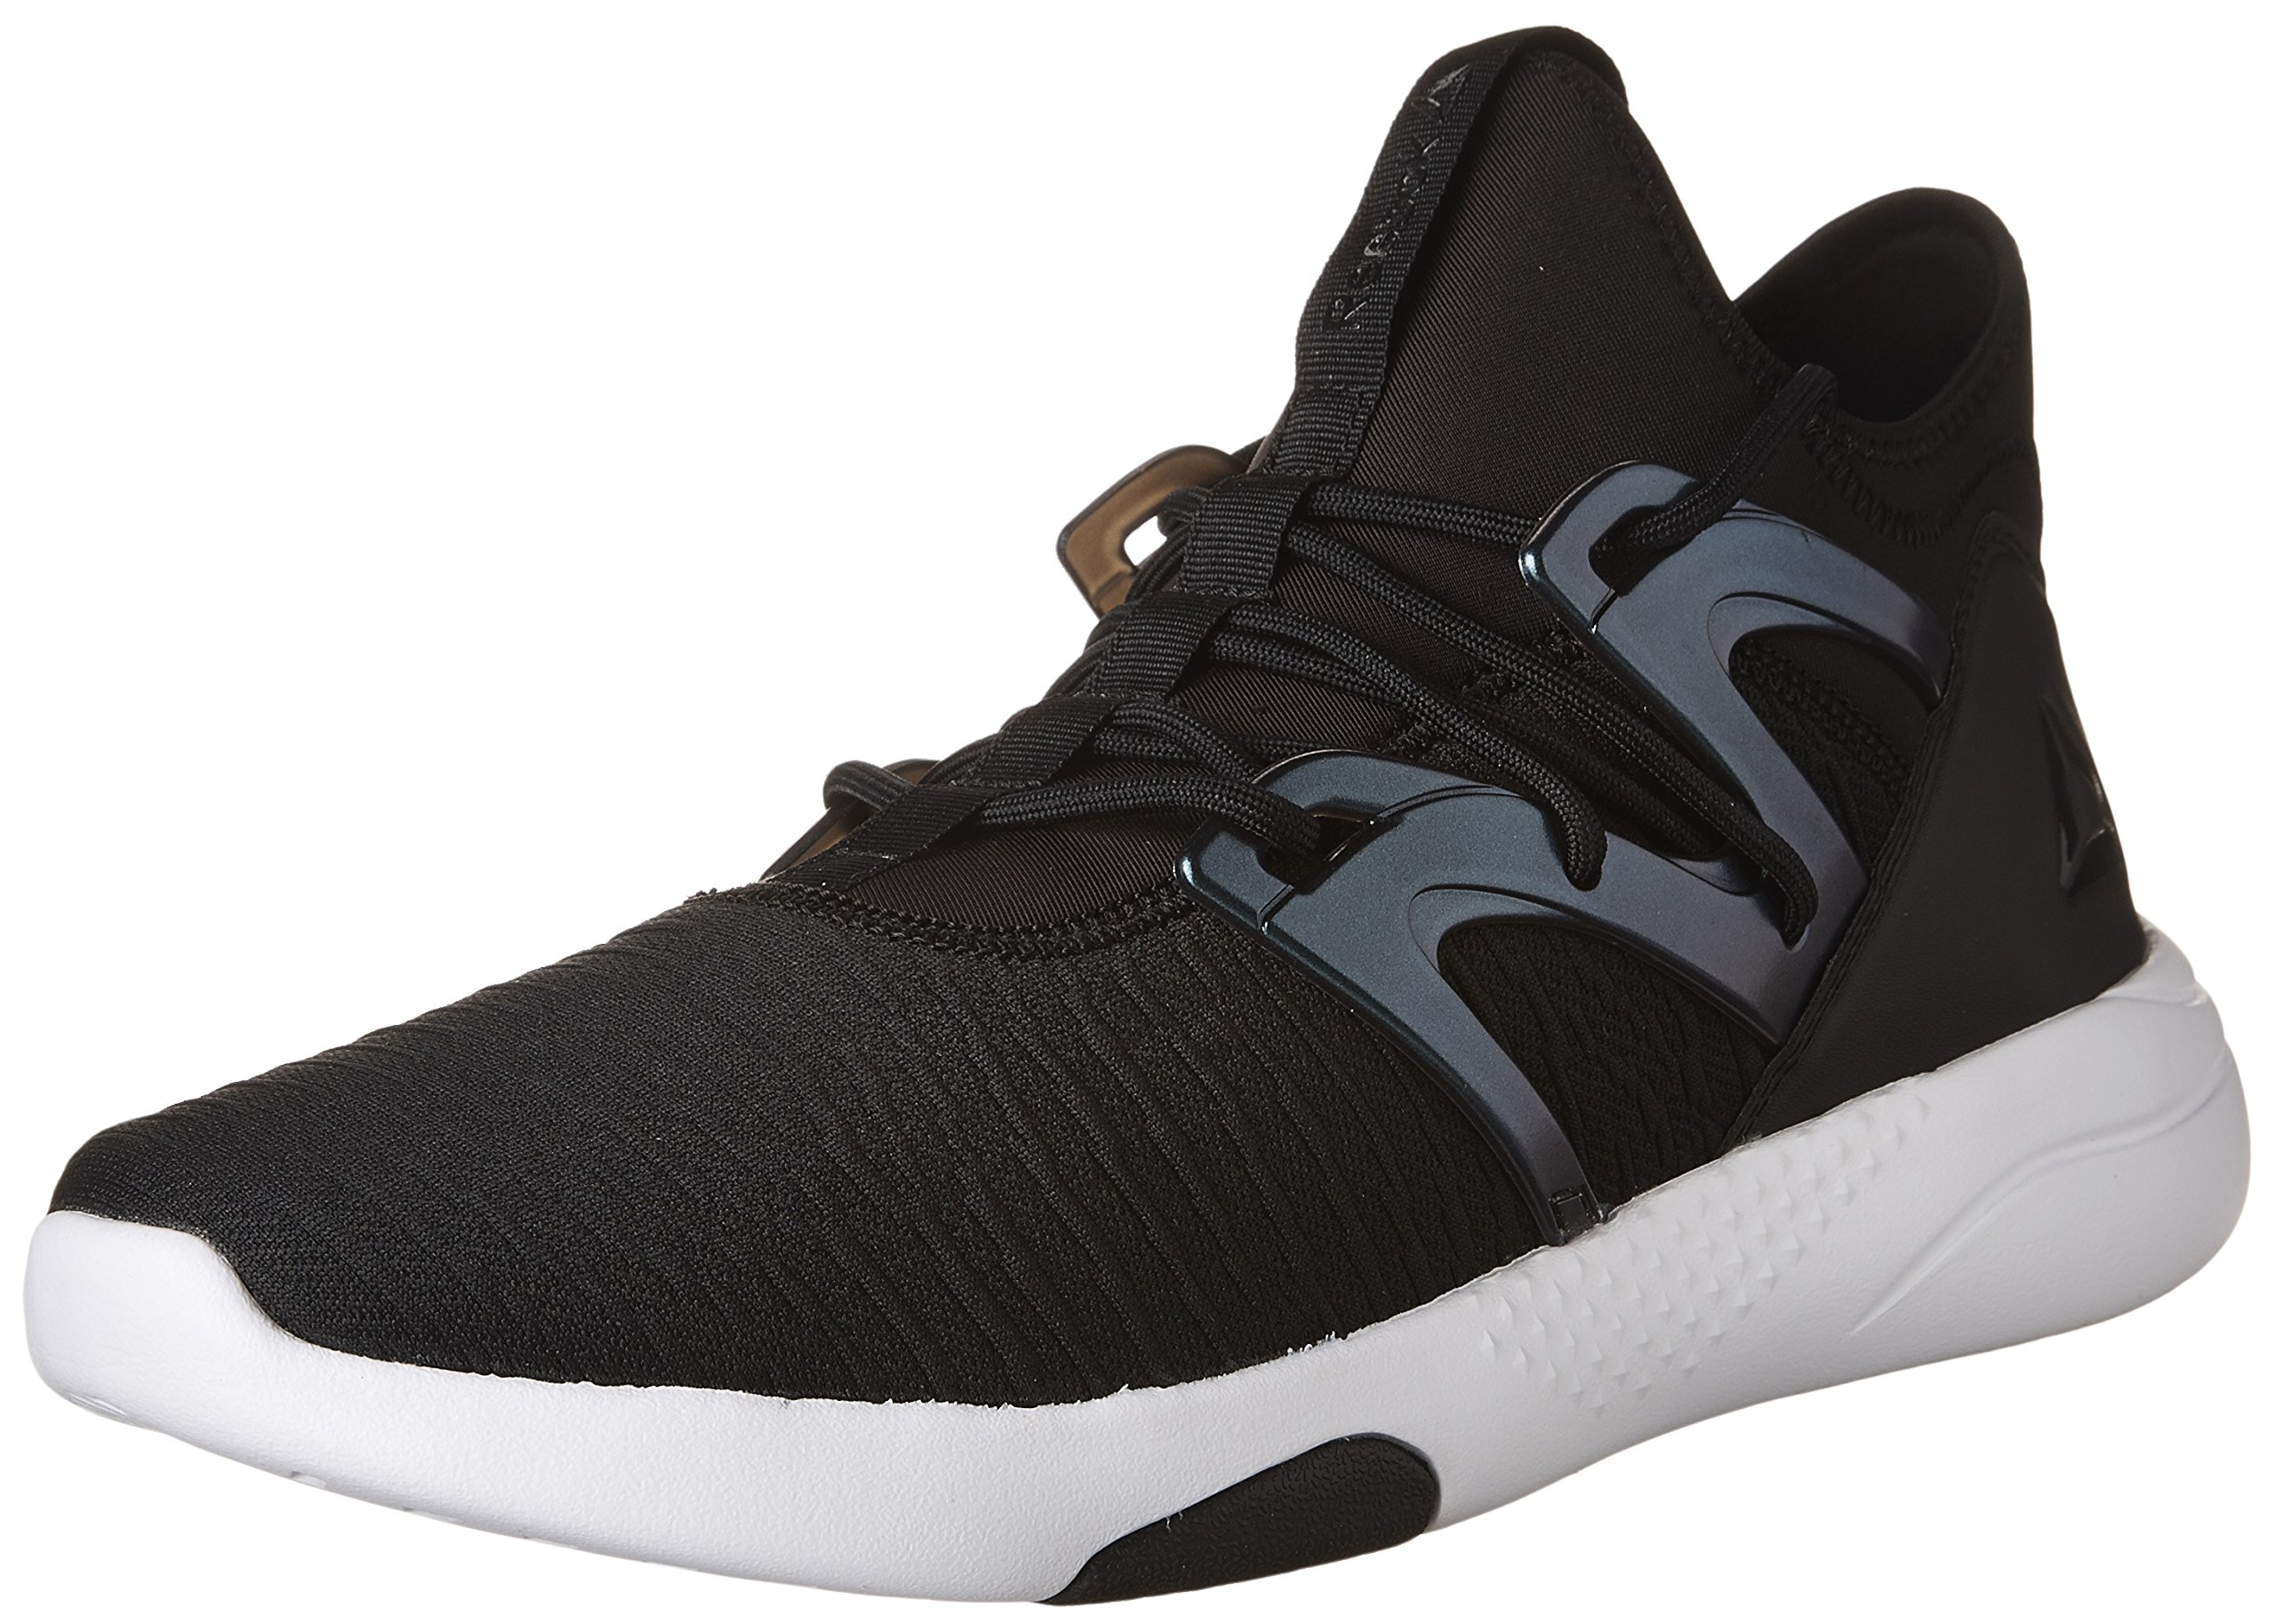 Reebok Women's Hayasu Ltd Sneaker, Black/Oil Slick/White/Vic, 6 M US